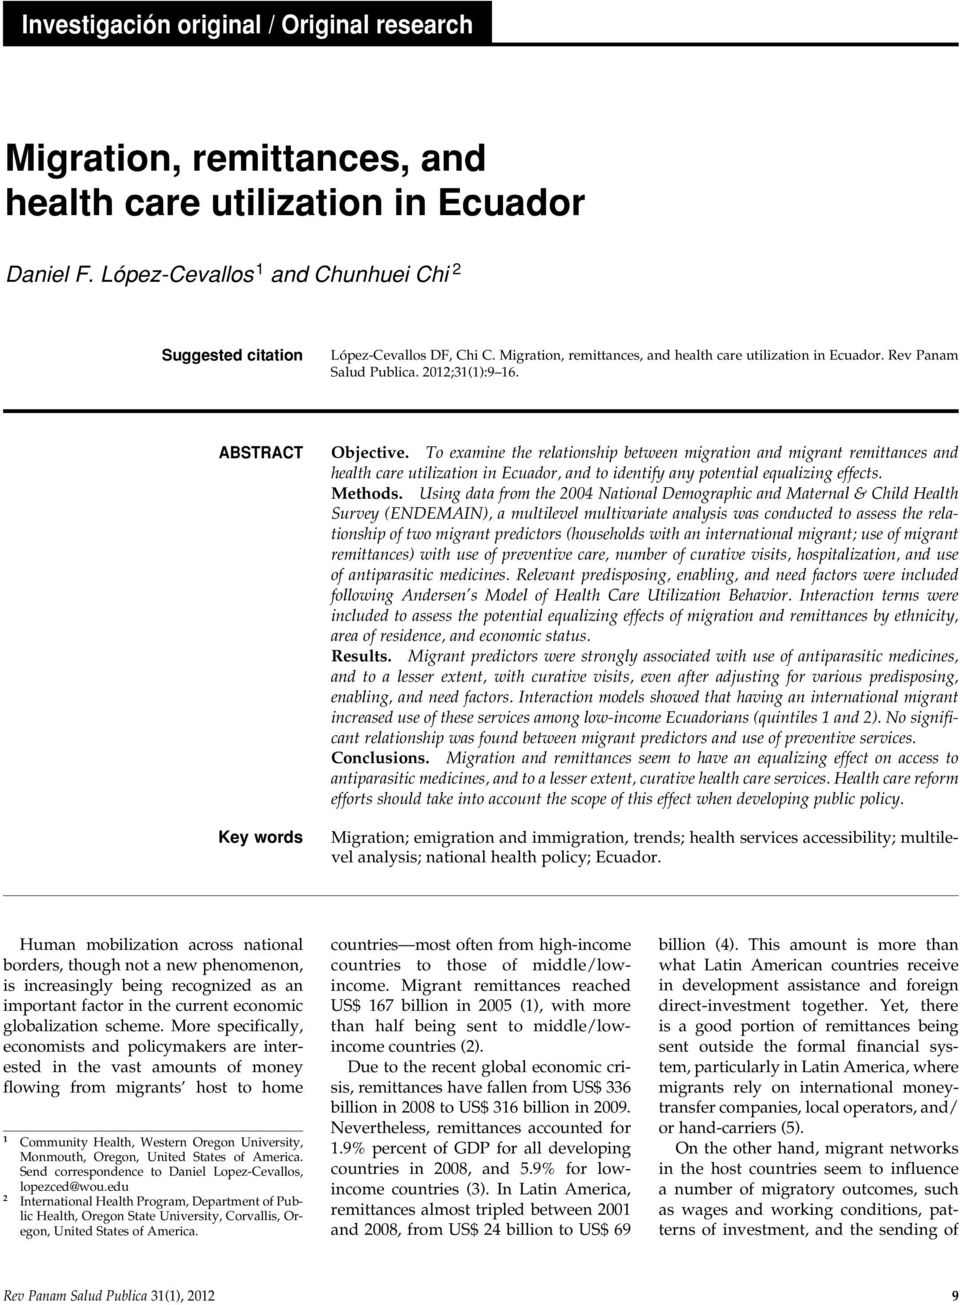 To examine the relatiohip between migration and migrant remittances and health care utilization in Ecuador, and to identify any potential equalizing effects. Methods.